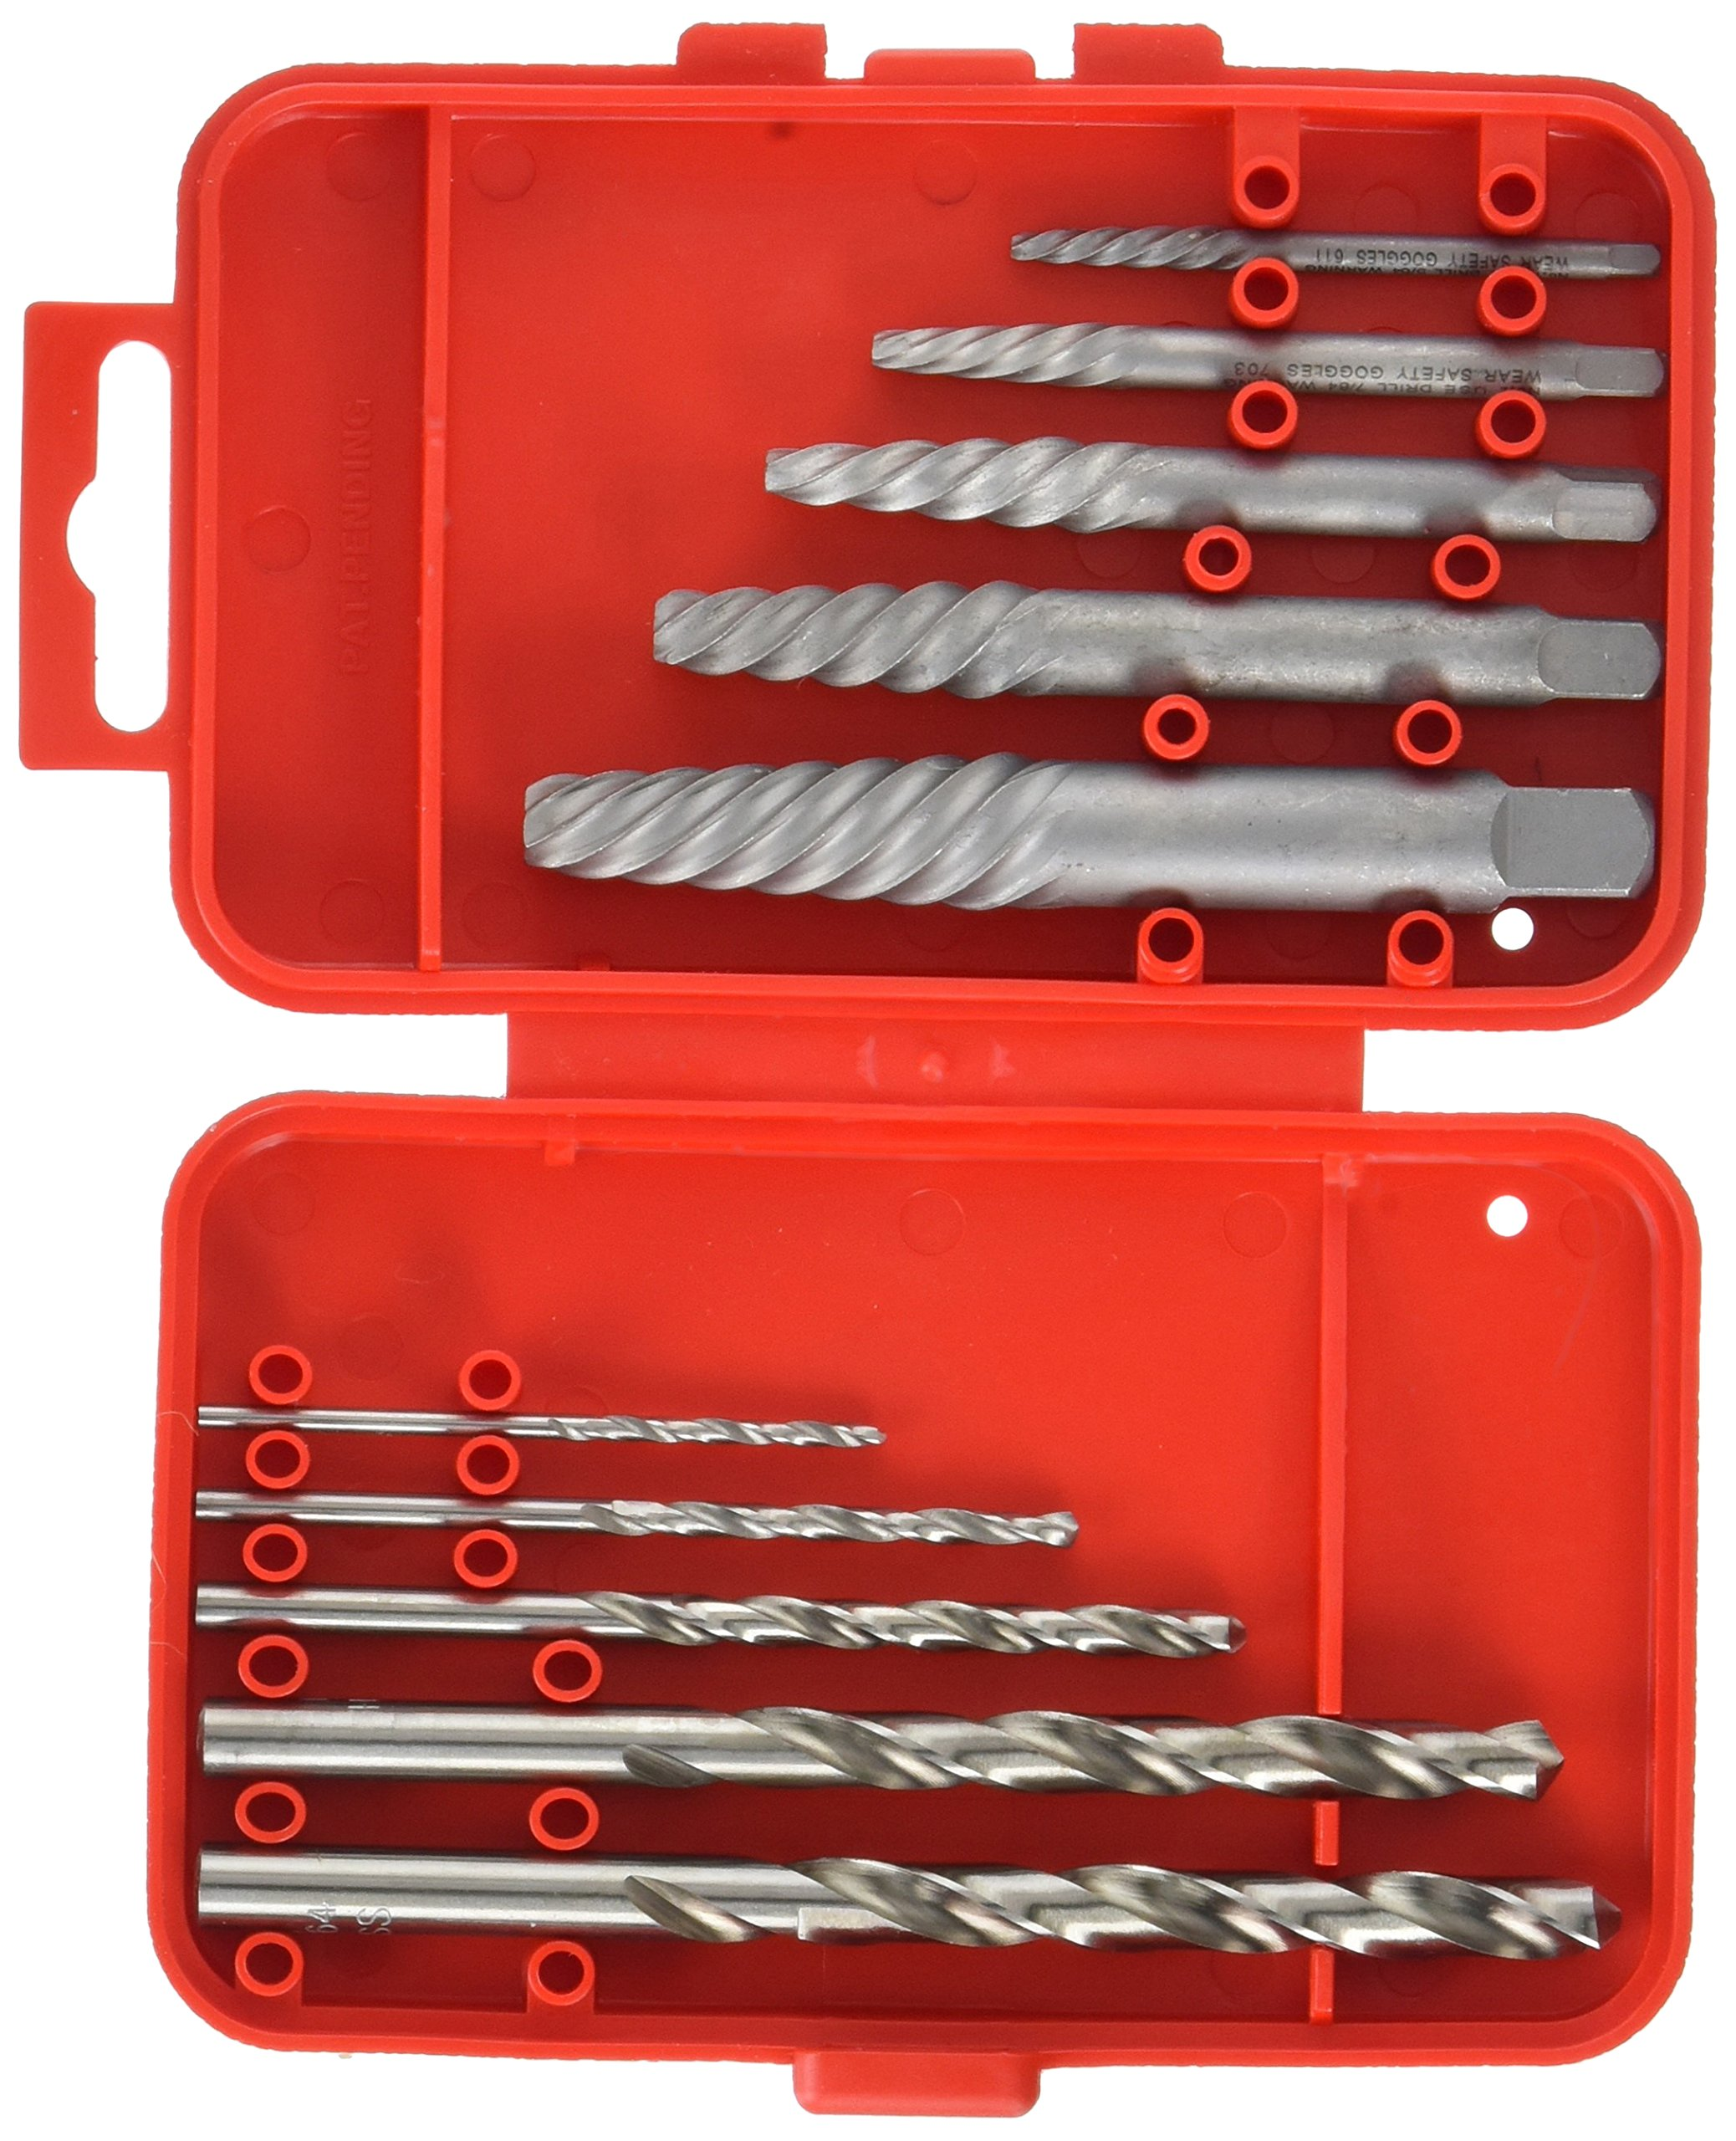 Vermont American 21829 Spiral Flute Screw Extractor and Drill Bit Set, Red, 10-Piece by Vermont American